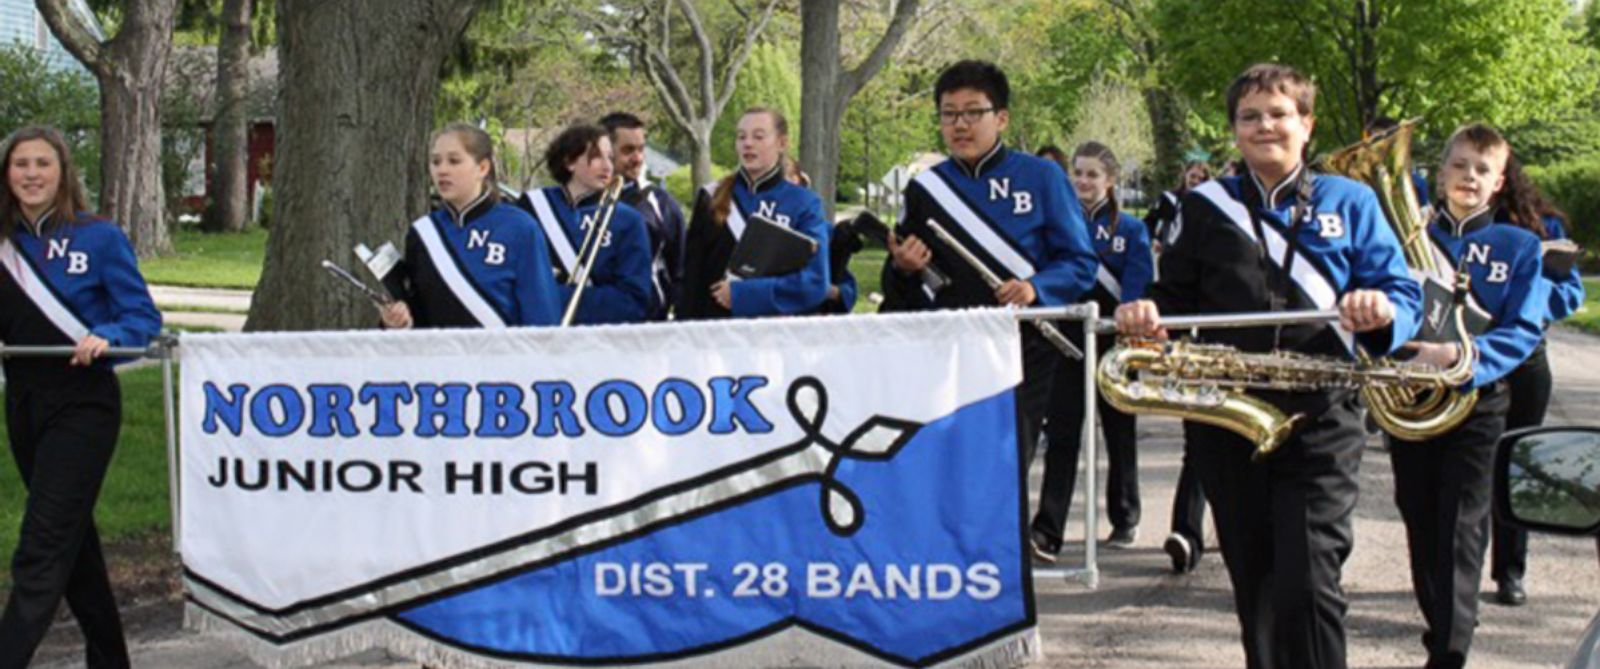 Middle School Band Brings End-of-Year Concert to Bandmate ...